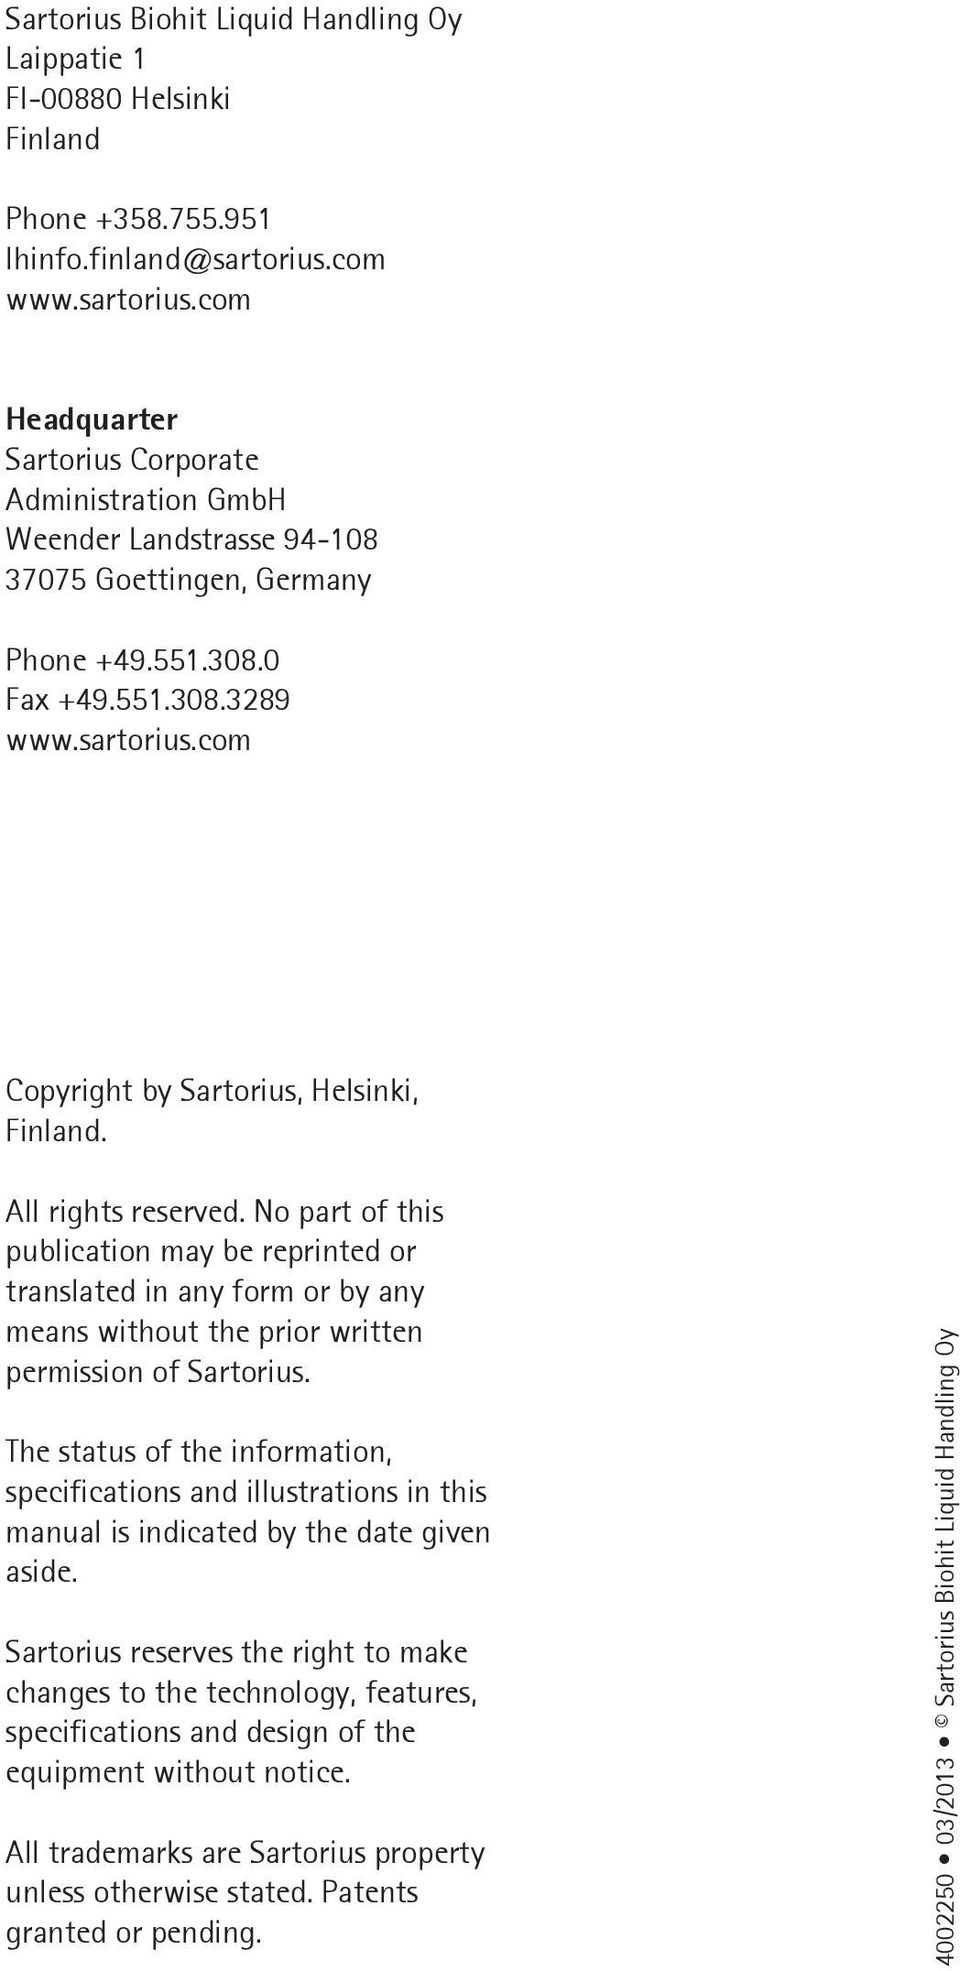 All rights reserved. No part of this publication may be reprinted or translated in any form or by any means without the prior written permission of Sartorius.